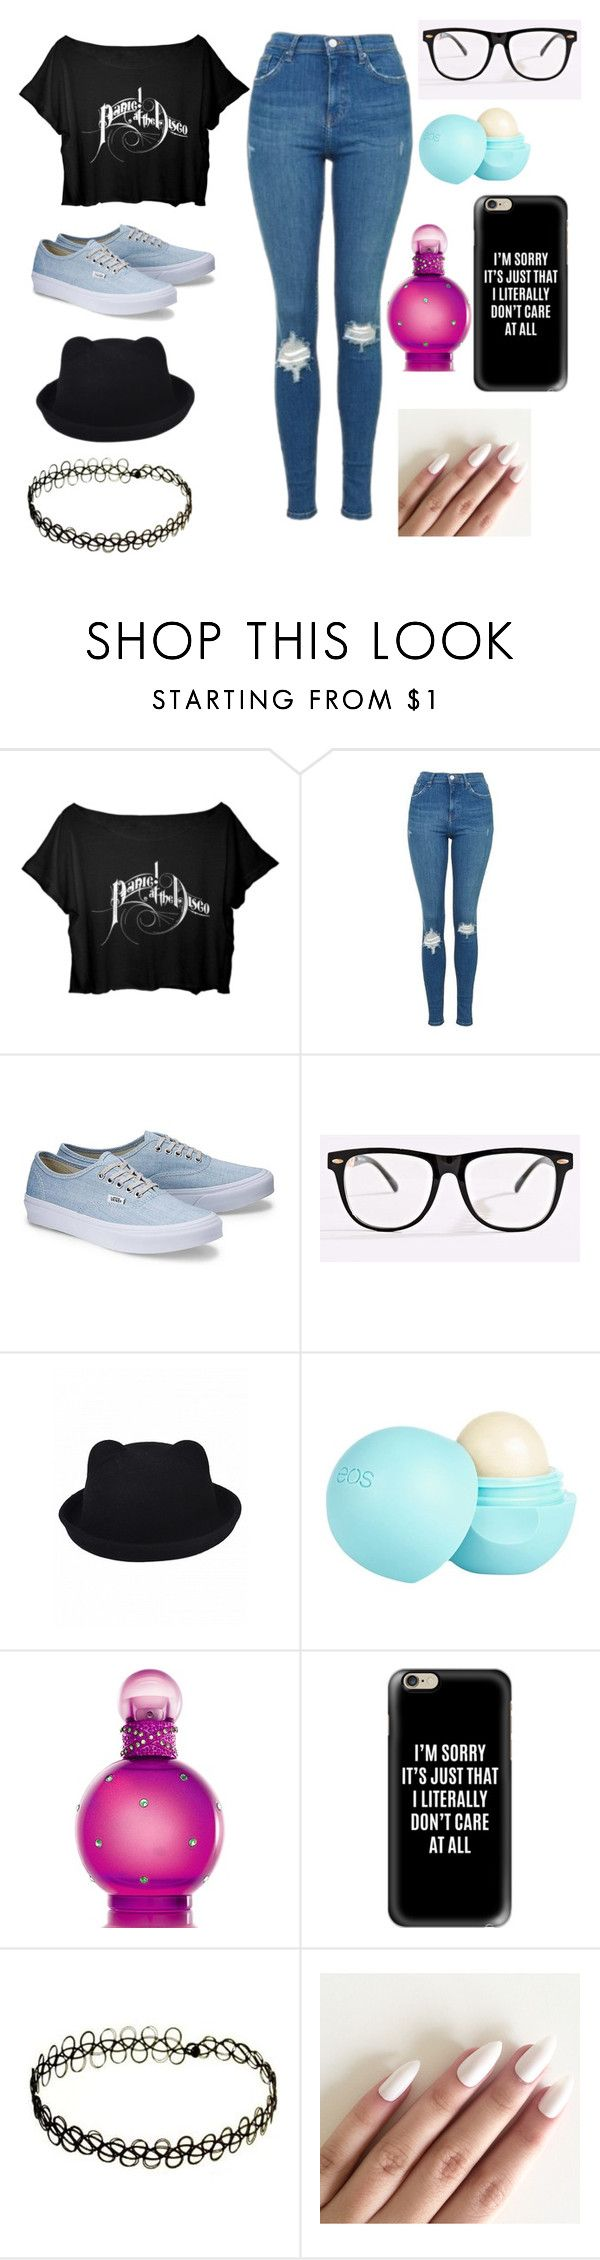 """""""- PANIC AT THE DISCO OUTFIT -"""" by hartney-figg ❤ liked on Polyvore featuring Topshop, River Island, Britney Spears and Casetify"""